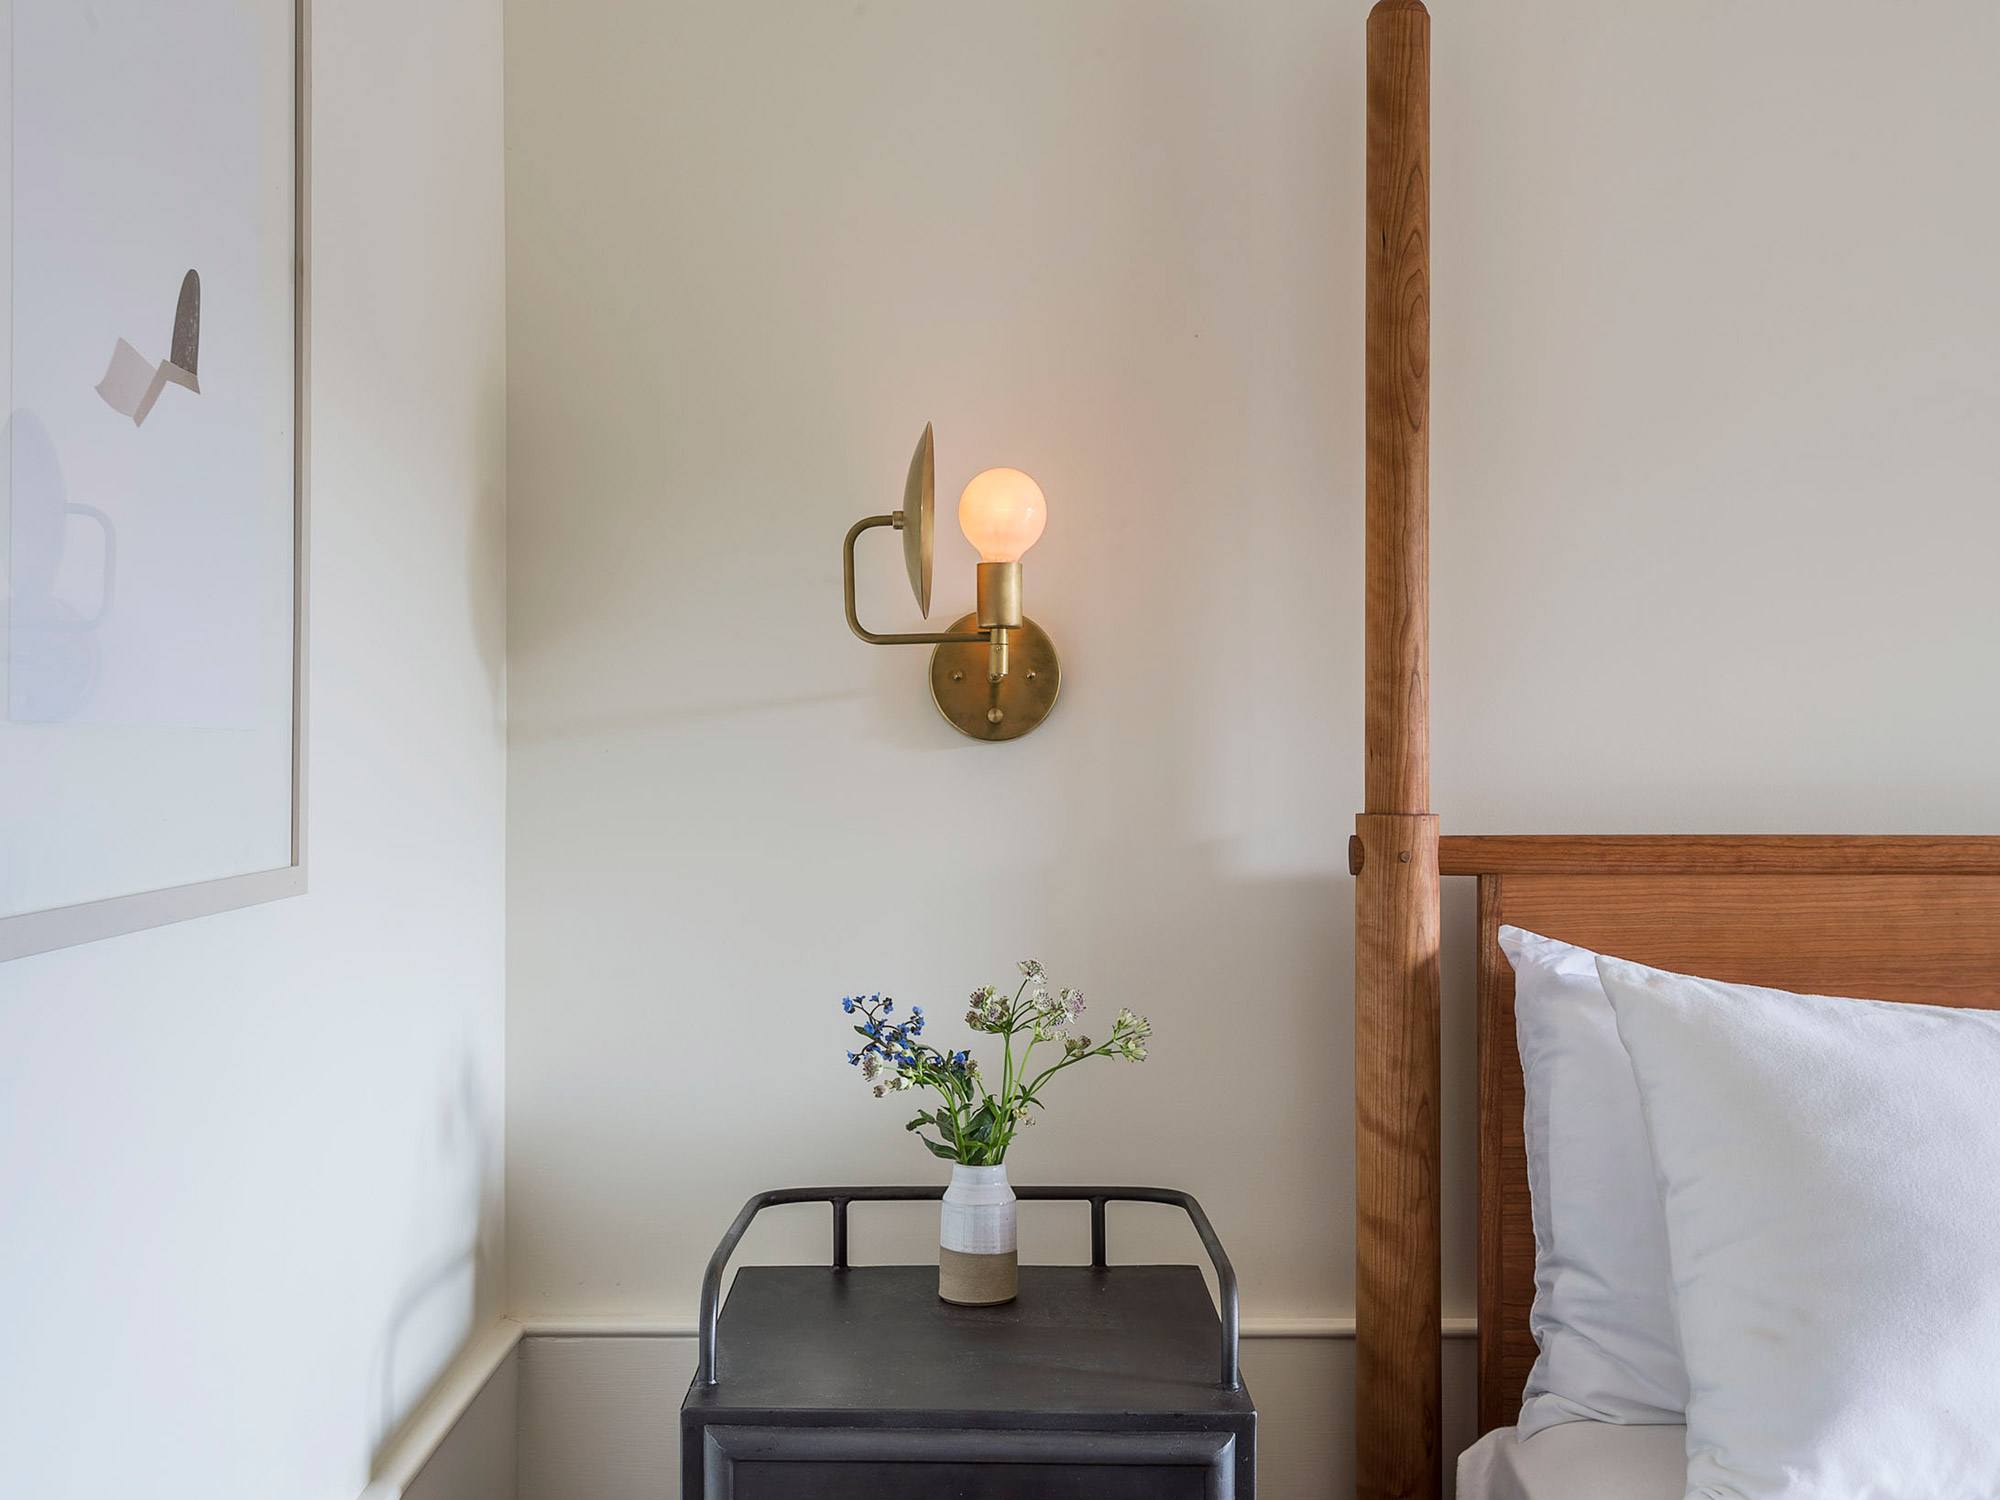 Turn Your Bed Into a Cozy Reading Nook With the Help of These 8 Wall Sconces